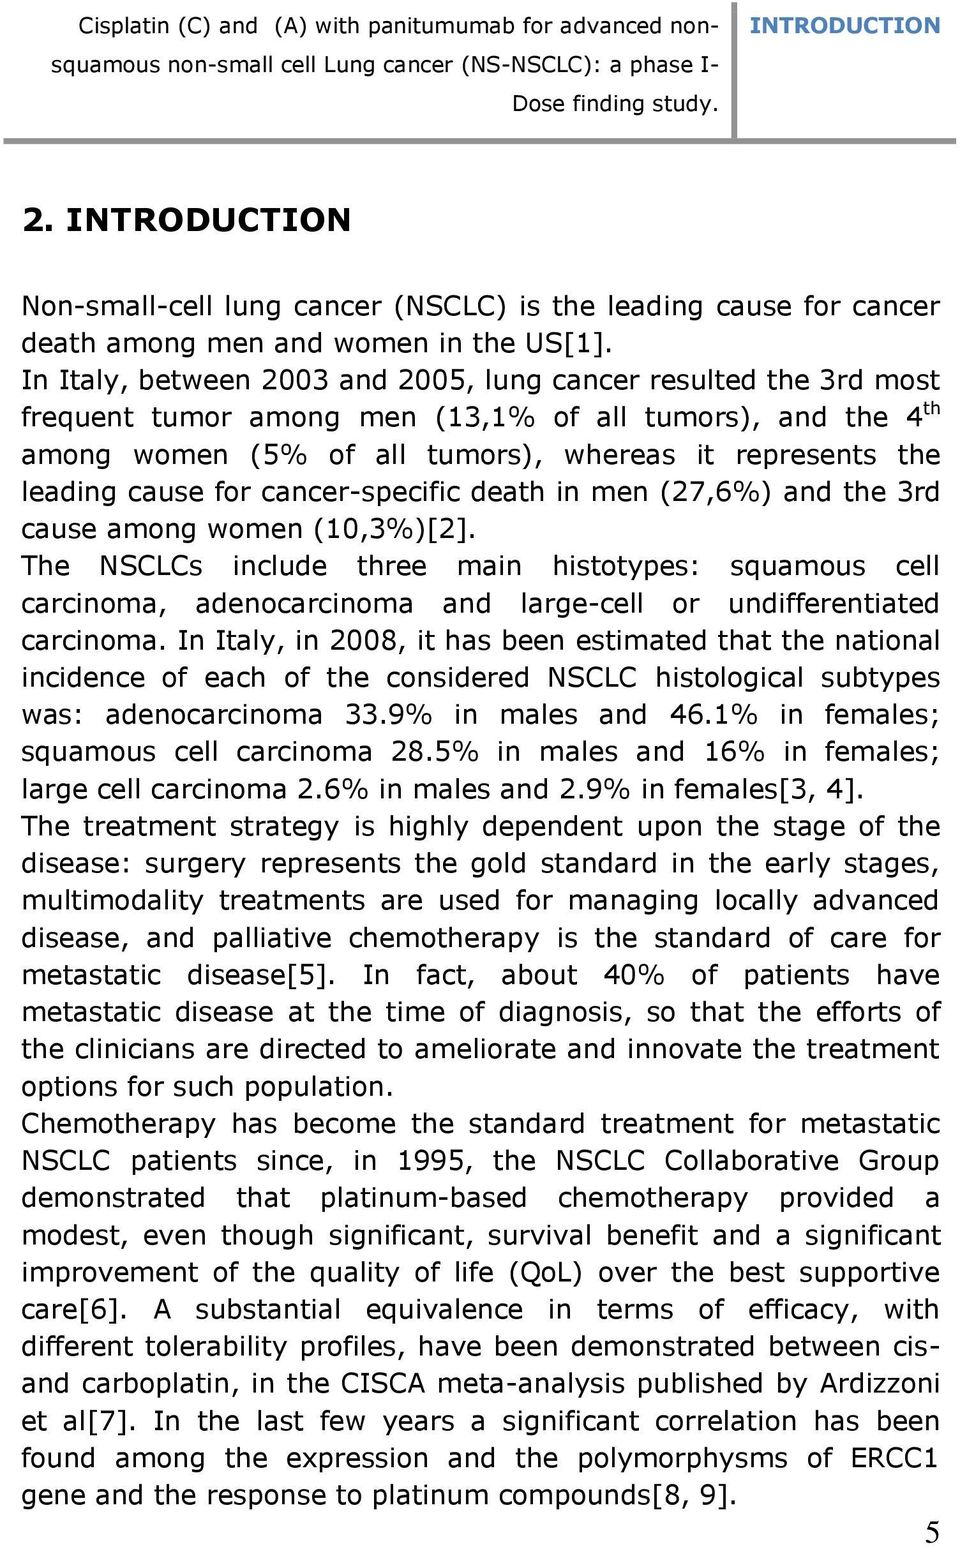 In Italy, between 2003 and 2005, lung cancer resulted the 3rd most frequent tumor among men (13,1% of all tumors), and the 4 th among women (5% of all tumors), whereas it represents the leading cause